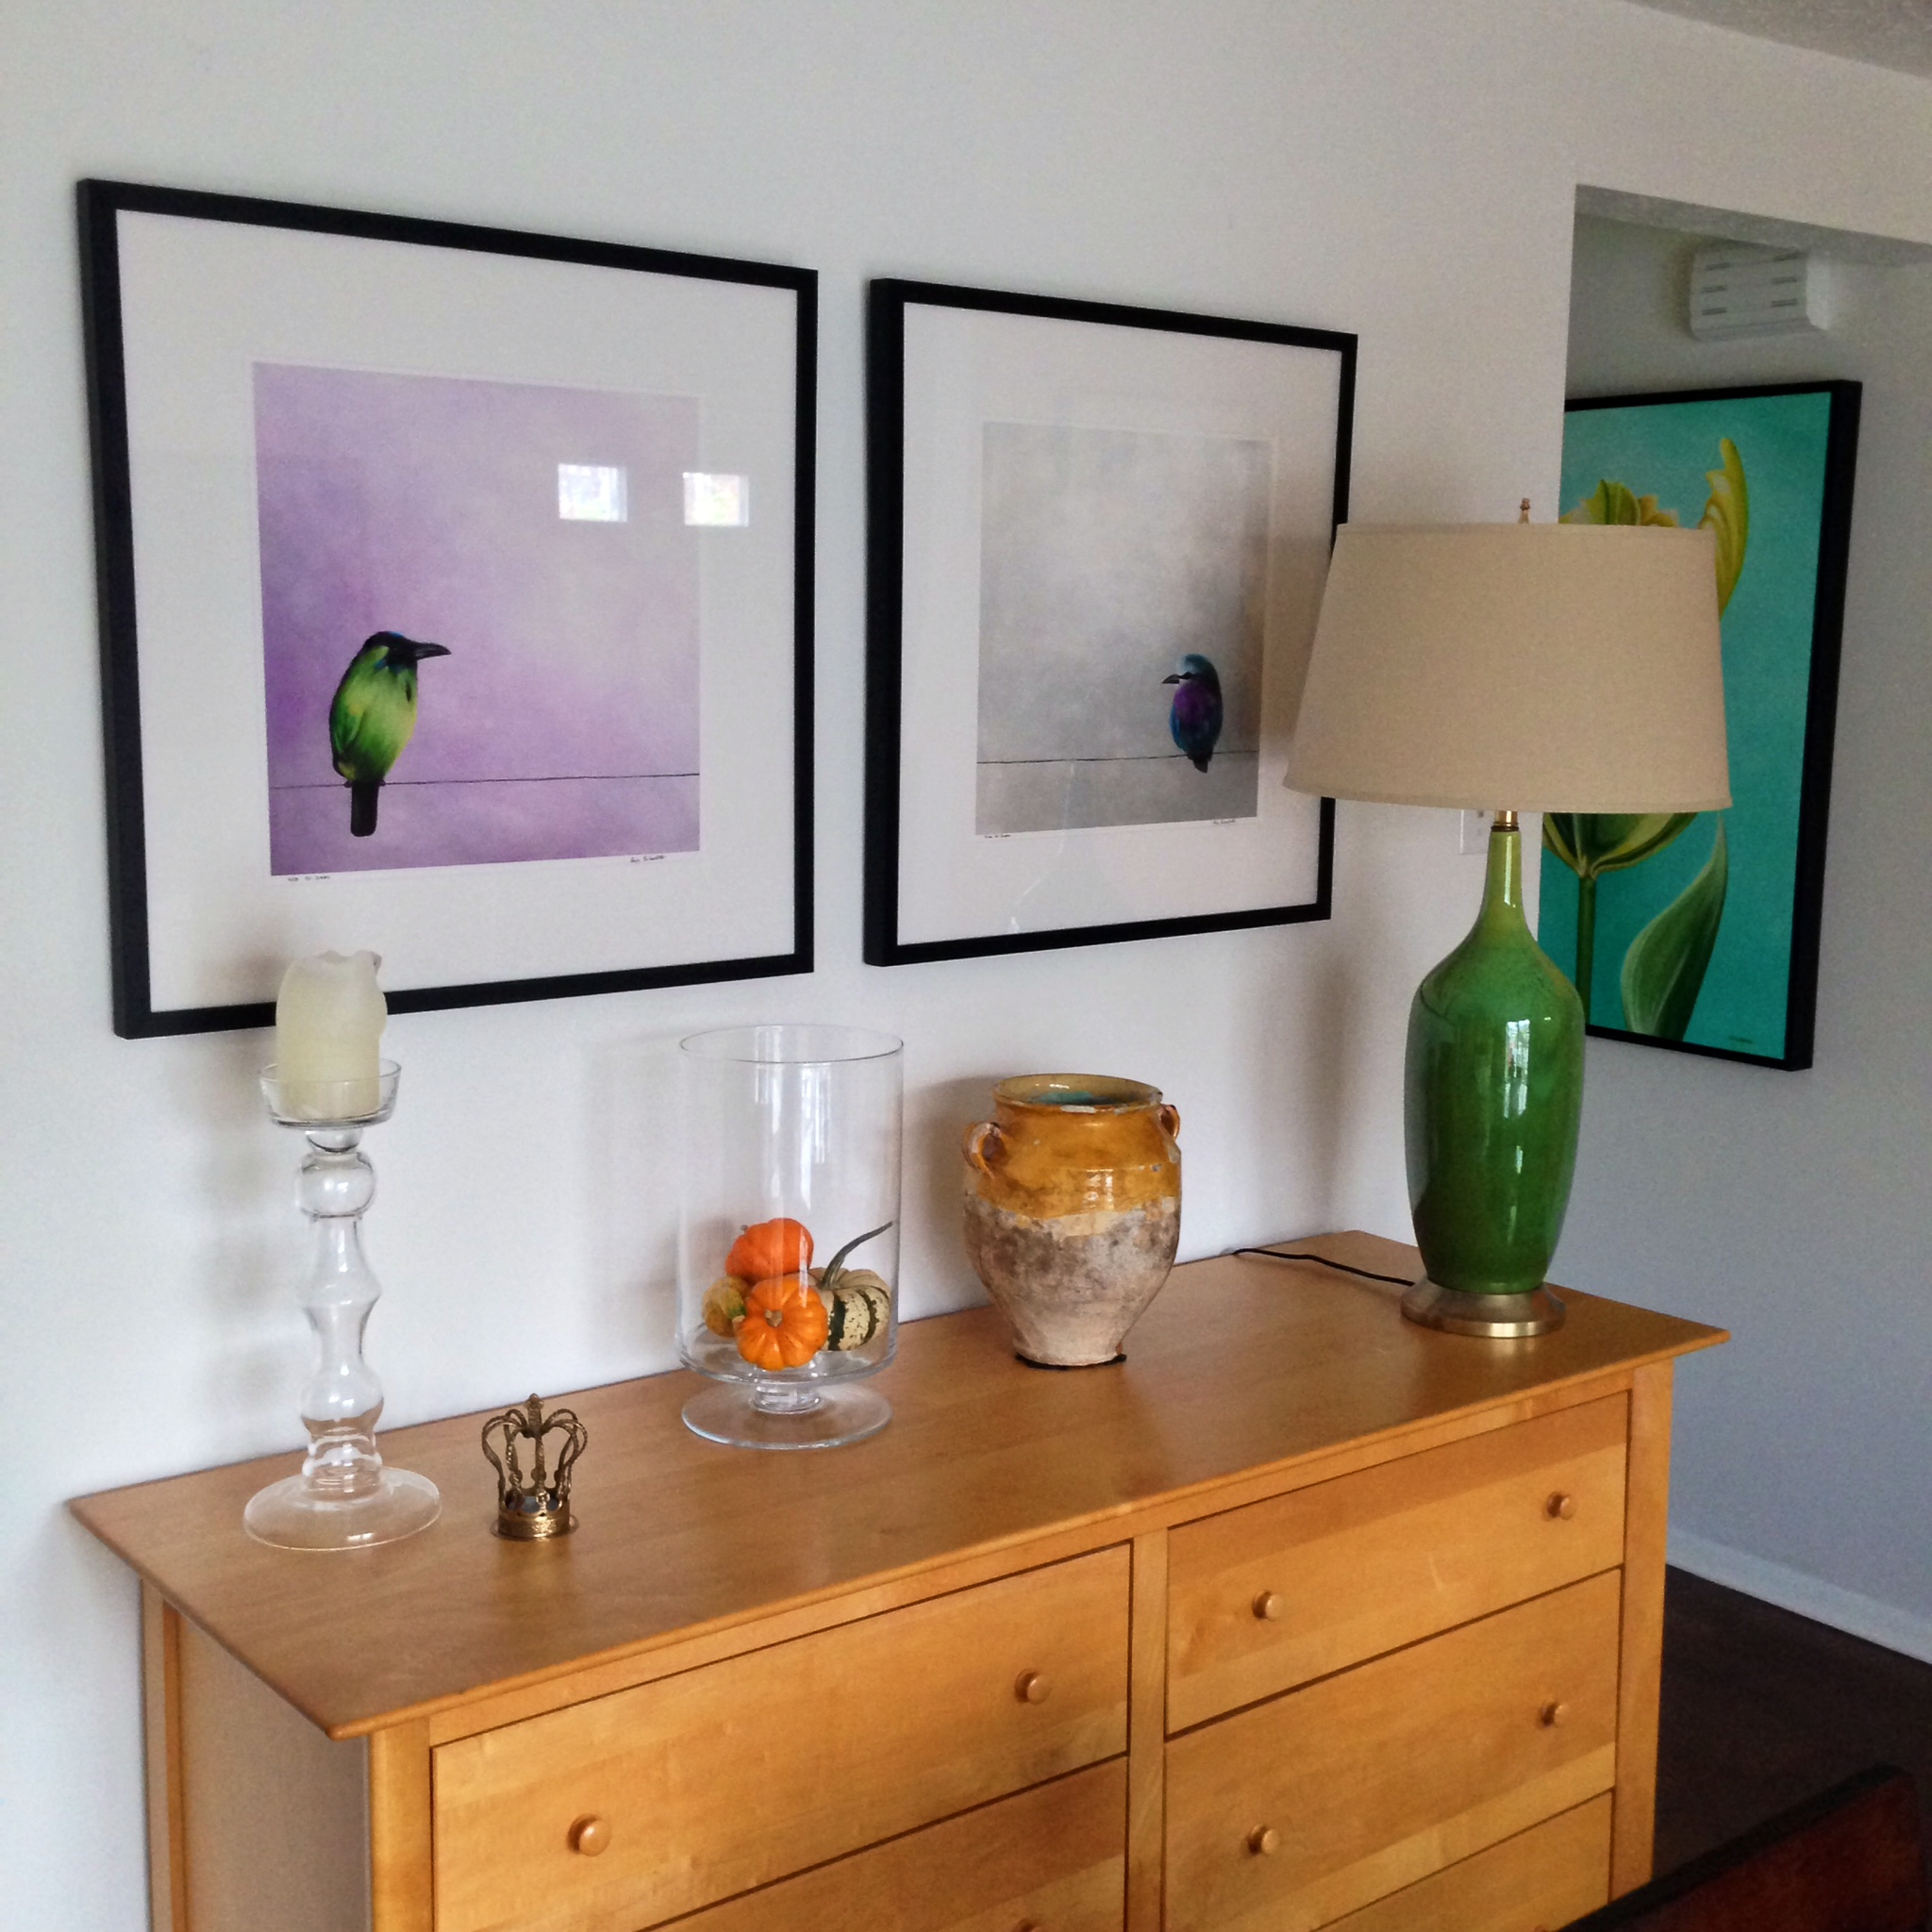 Limited editions by Erica Eriksdotter in the living room